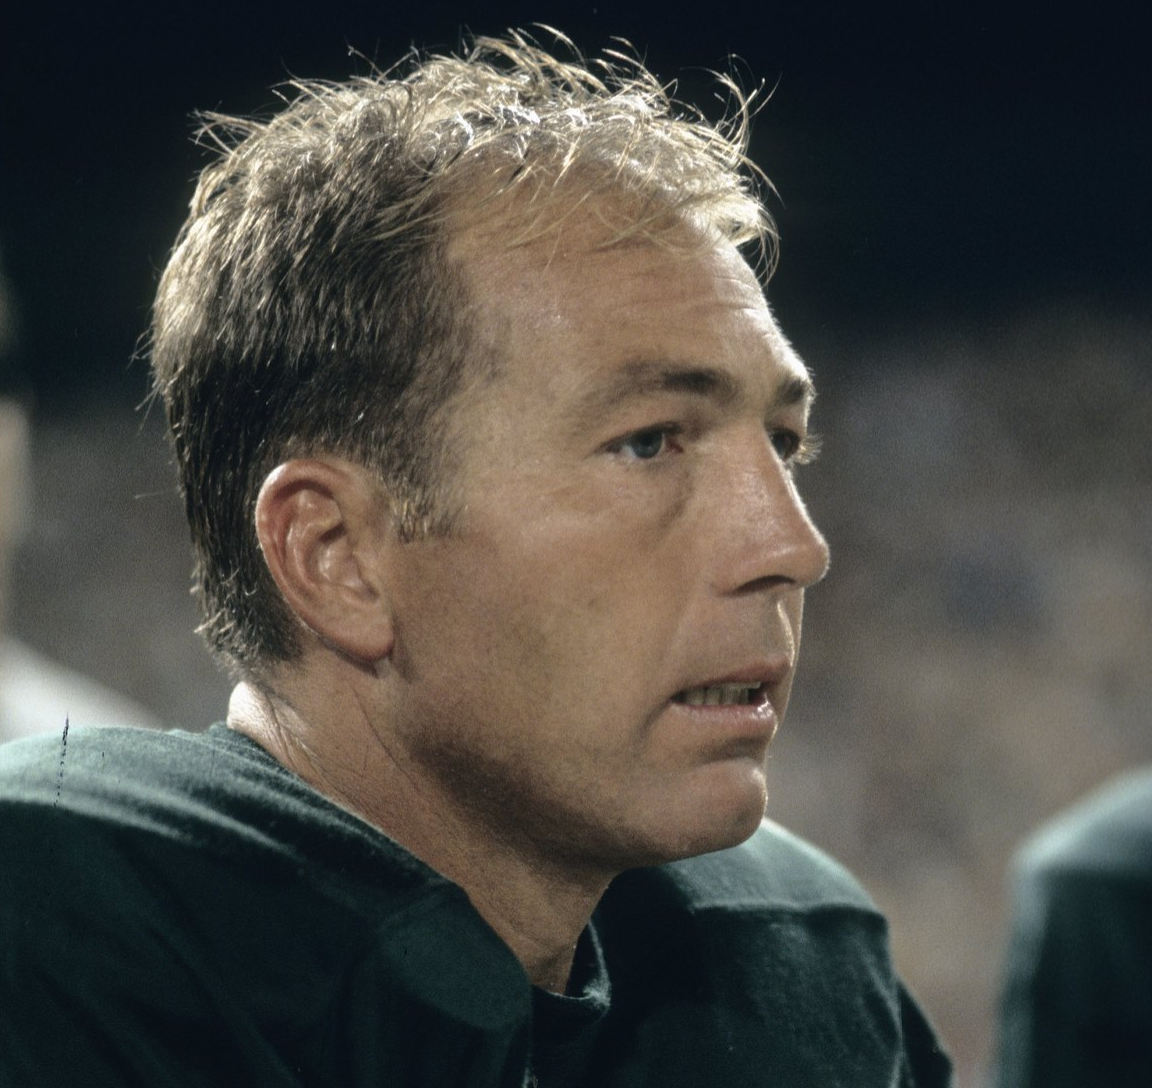 bart starr growing up had a broken relationship with his father.